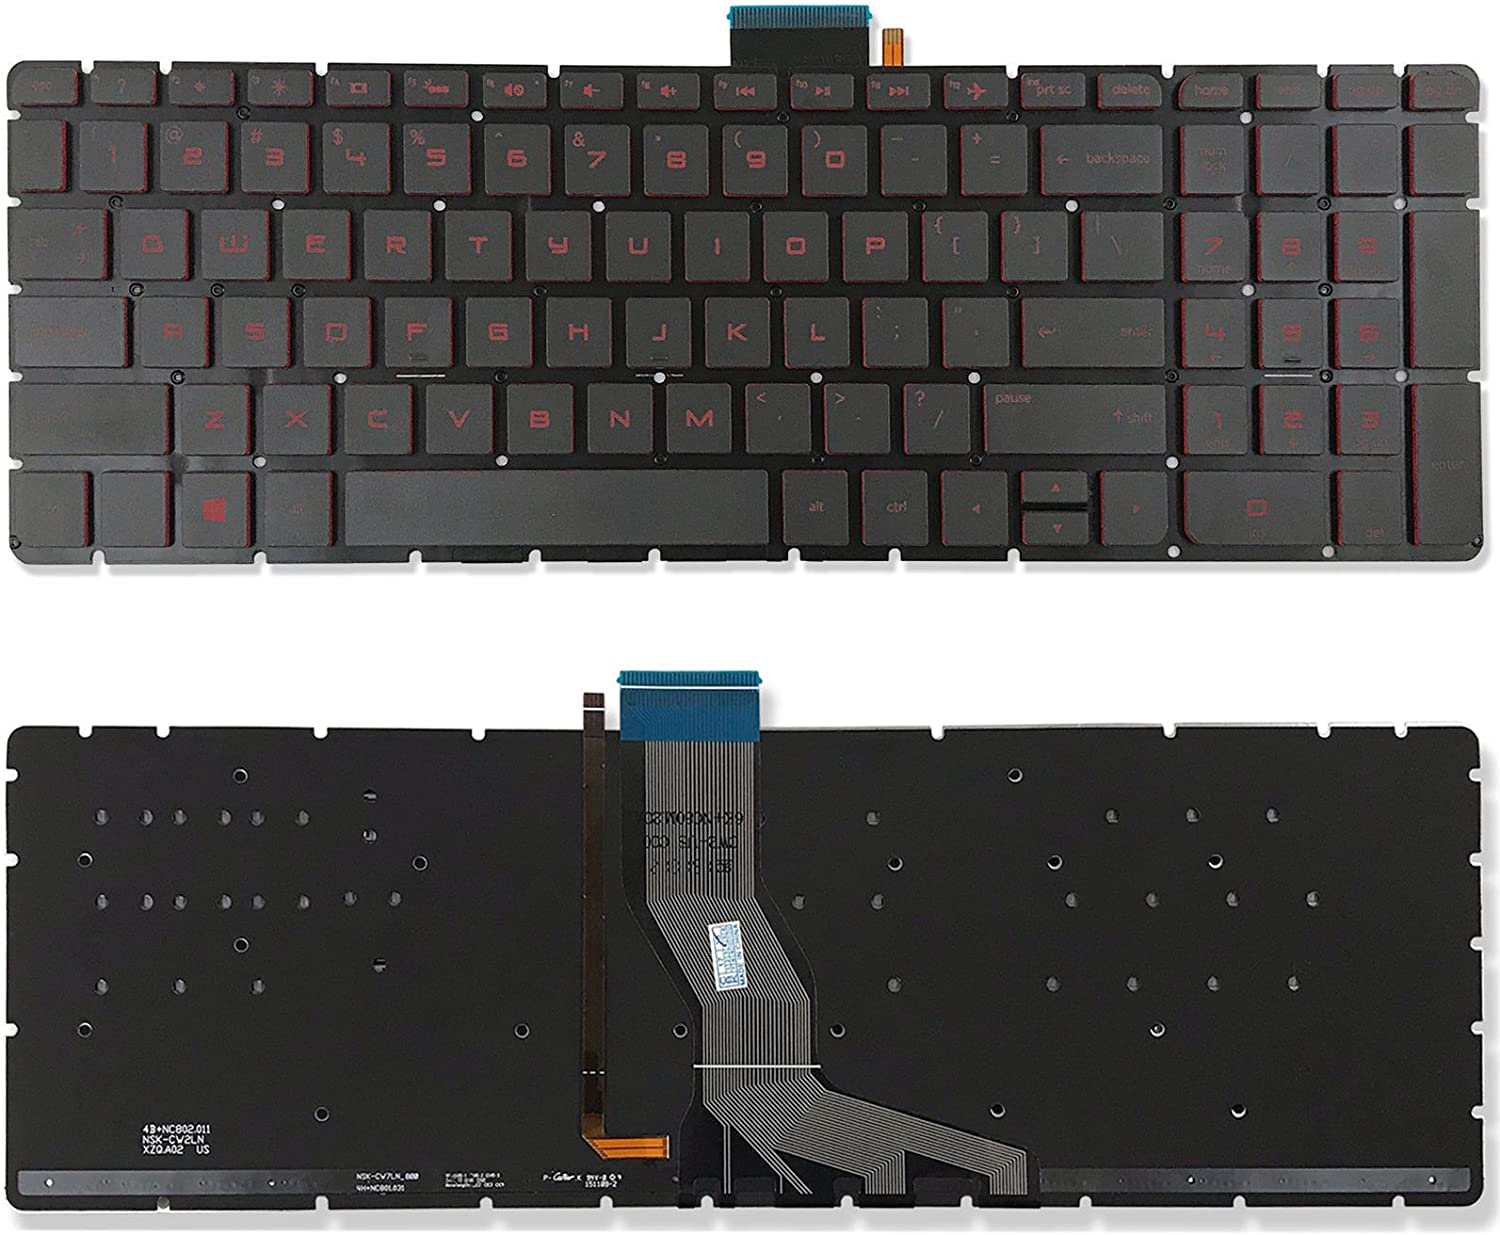 New US Red Font Backlit English Laptop Keyboard Replacement for HP Star Wars Special Edition 15-an044nr 15-an050ca 15-an050nr 15-an051dx 15-an058ca 15-an067nr Light Backlight